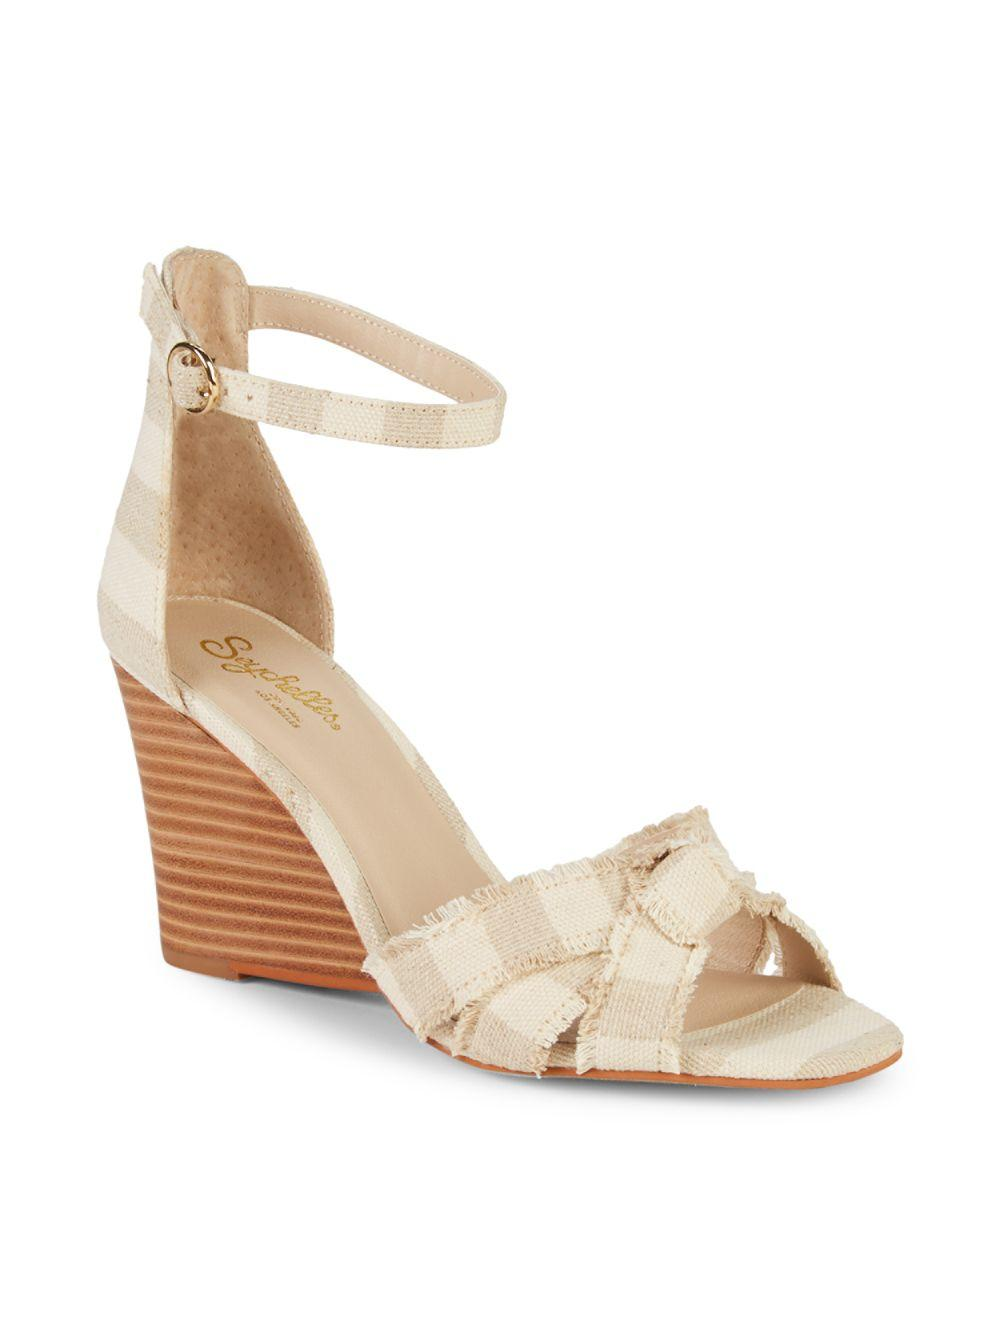 317692b1f2e8 Lyst - Seychelles Fringed Wedge Sandals in Natural